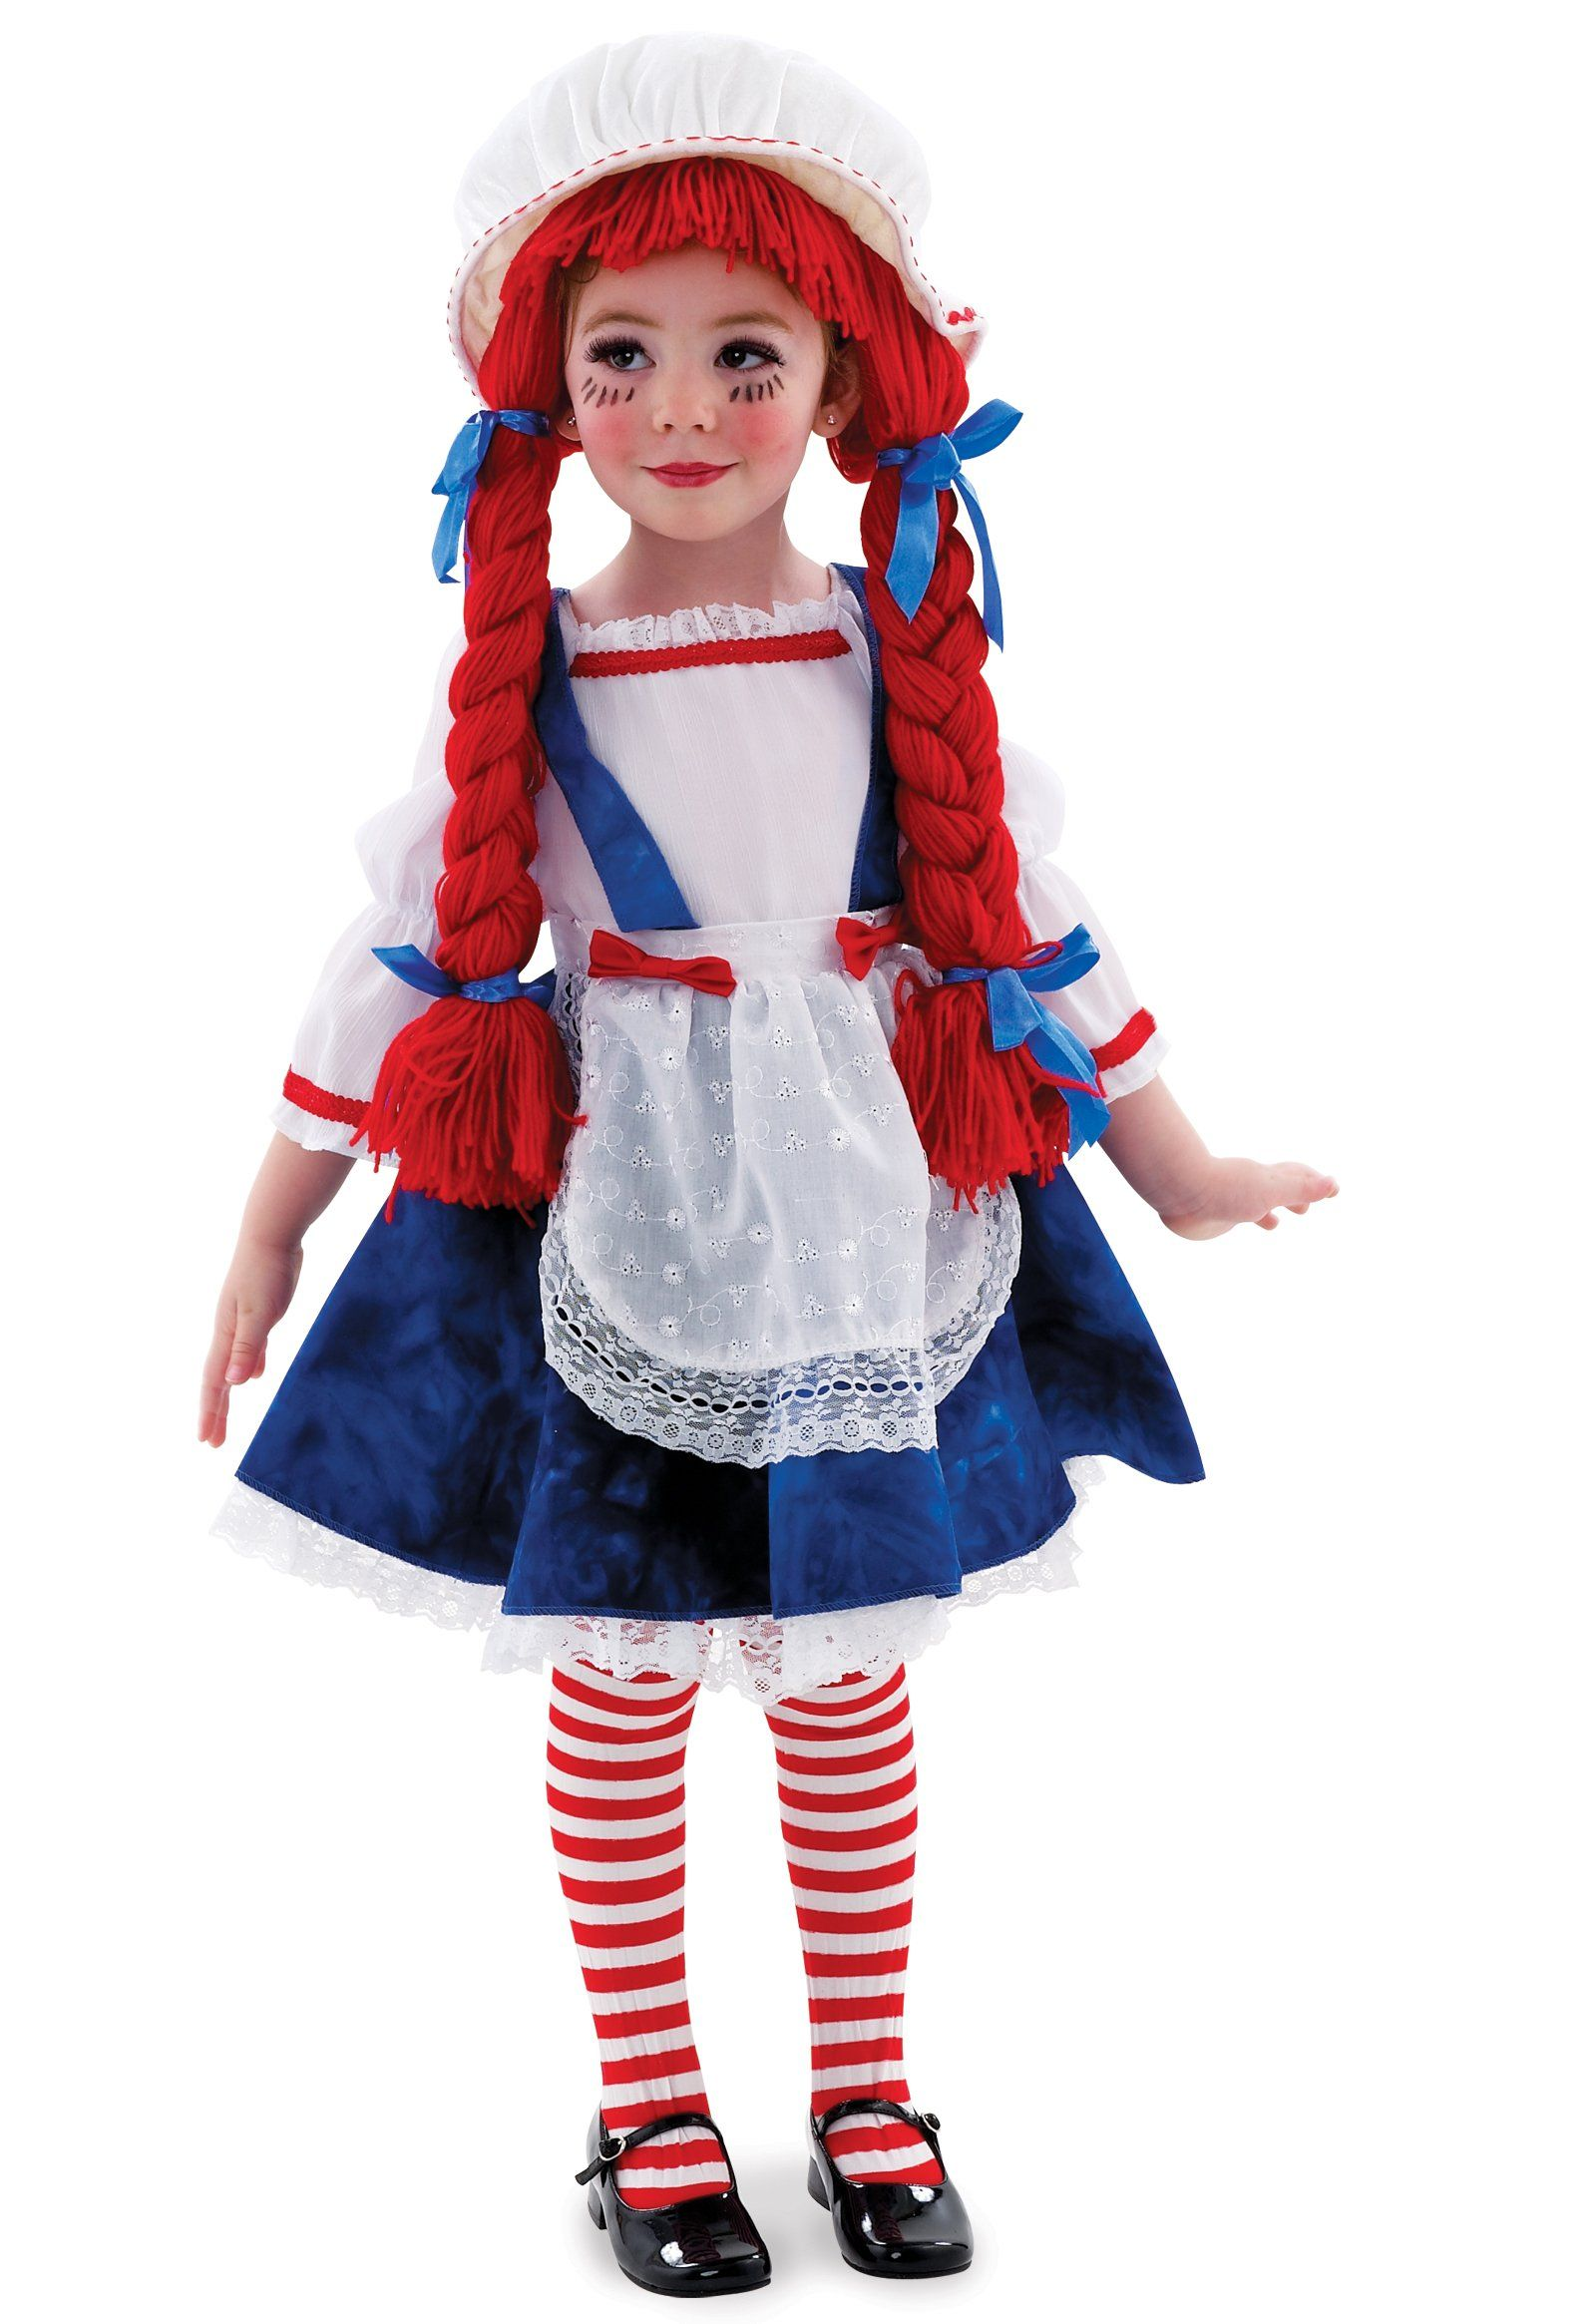 yarn babies rag doll girl toddler child costume - How To Make A Doll Costume For Halloween